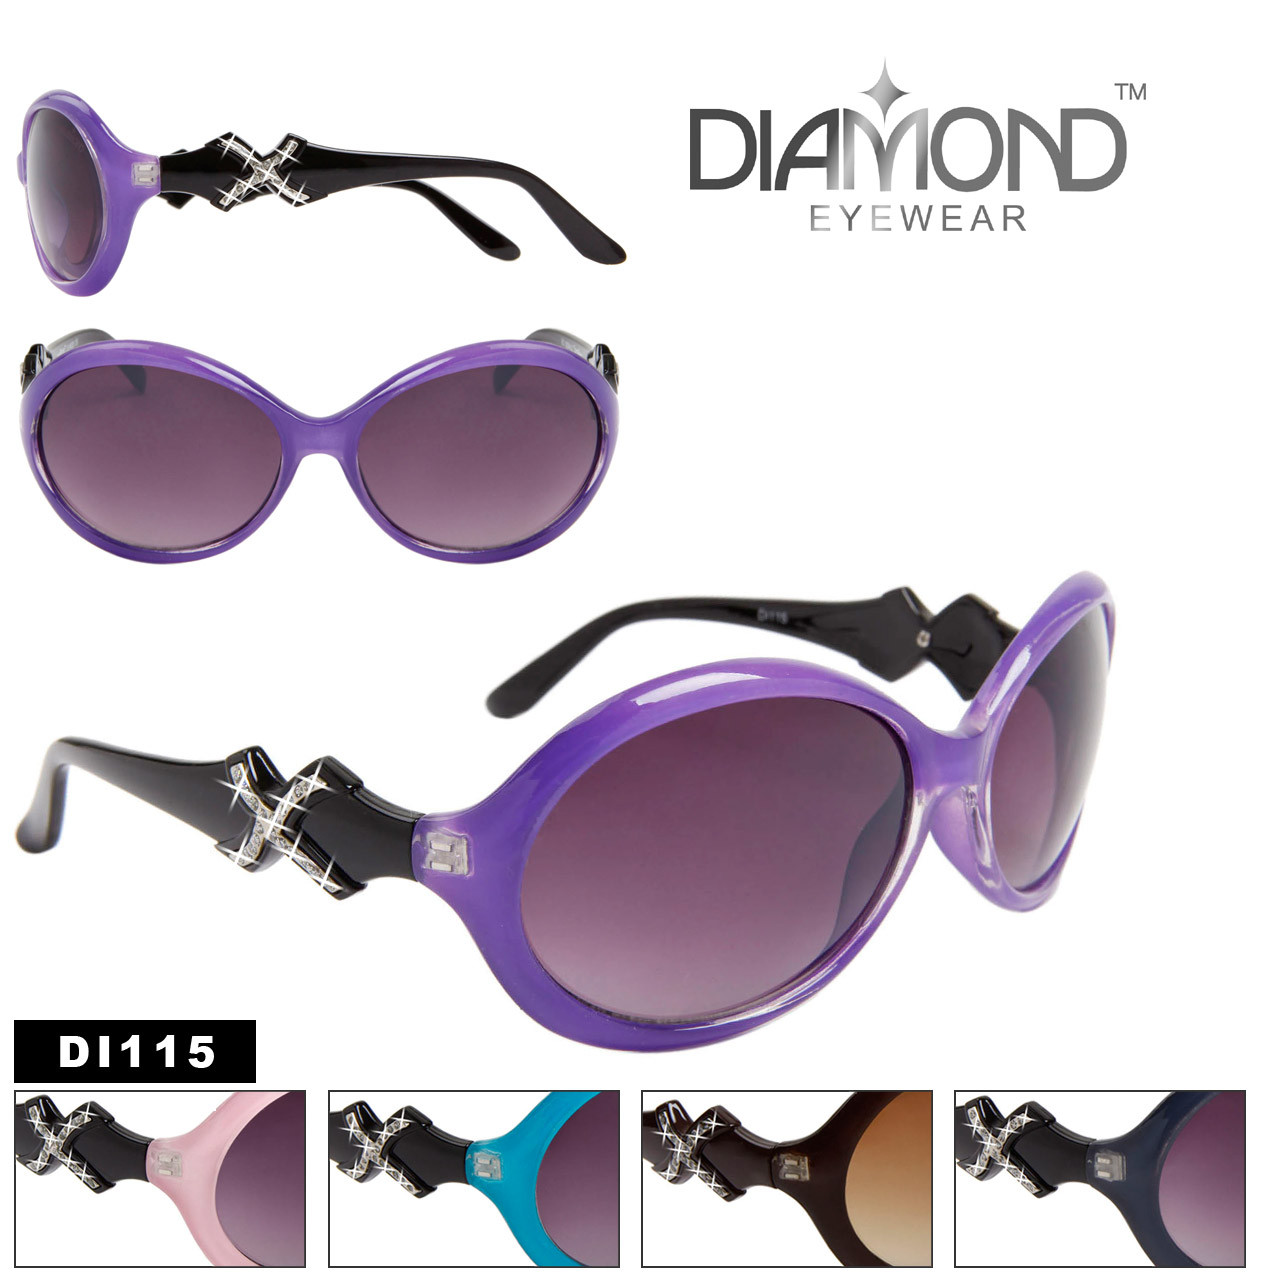 Designer Diamond Eyewear with Rhinestones DI115